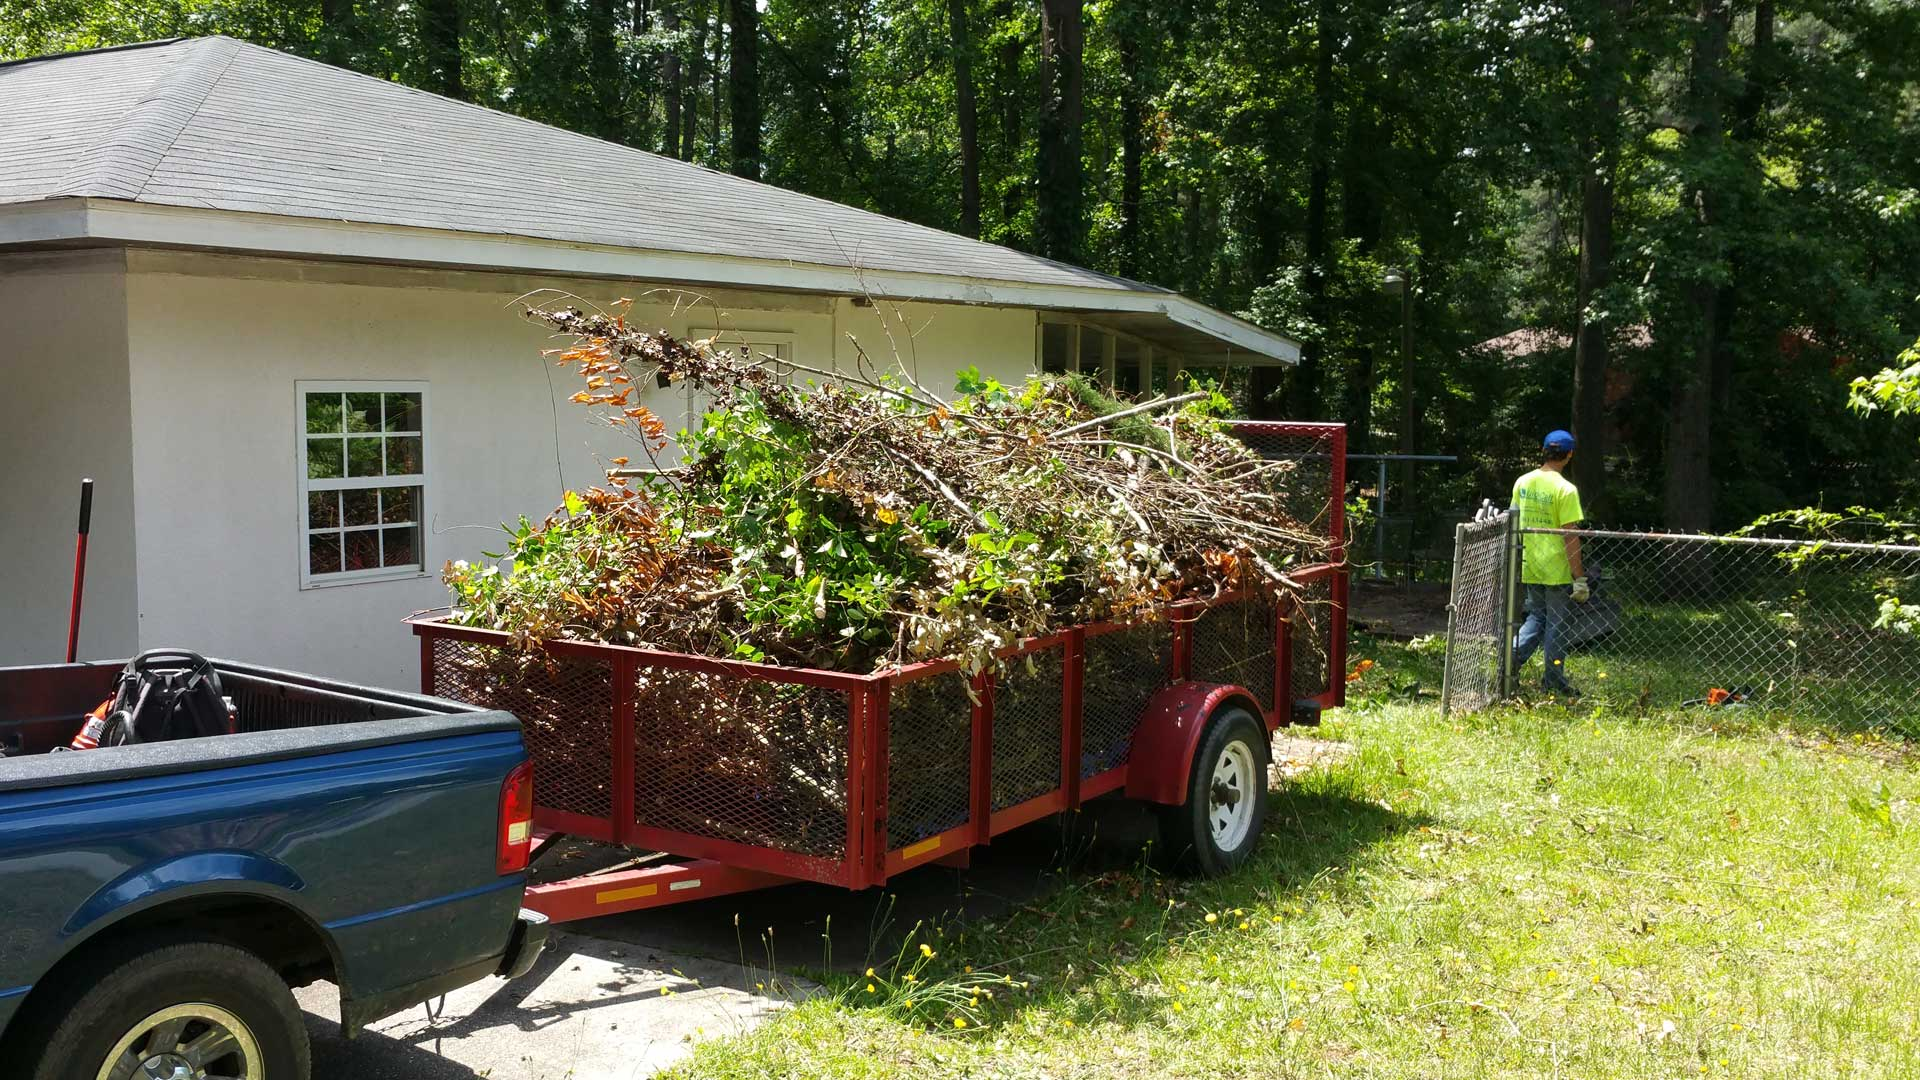 QuickCall Services removing overgrown landscape debris from a home in Martinez, GA.